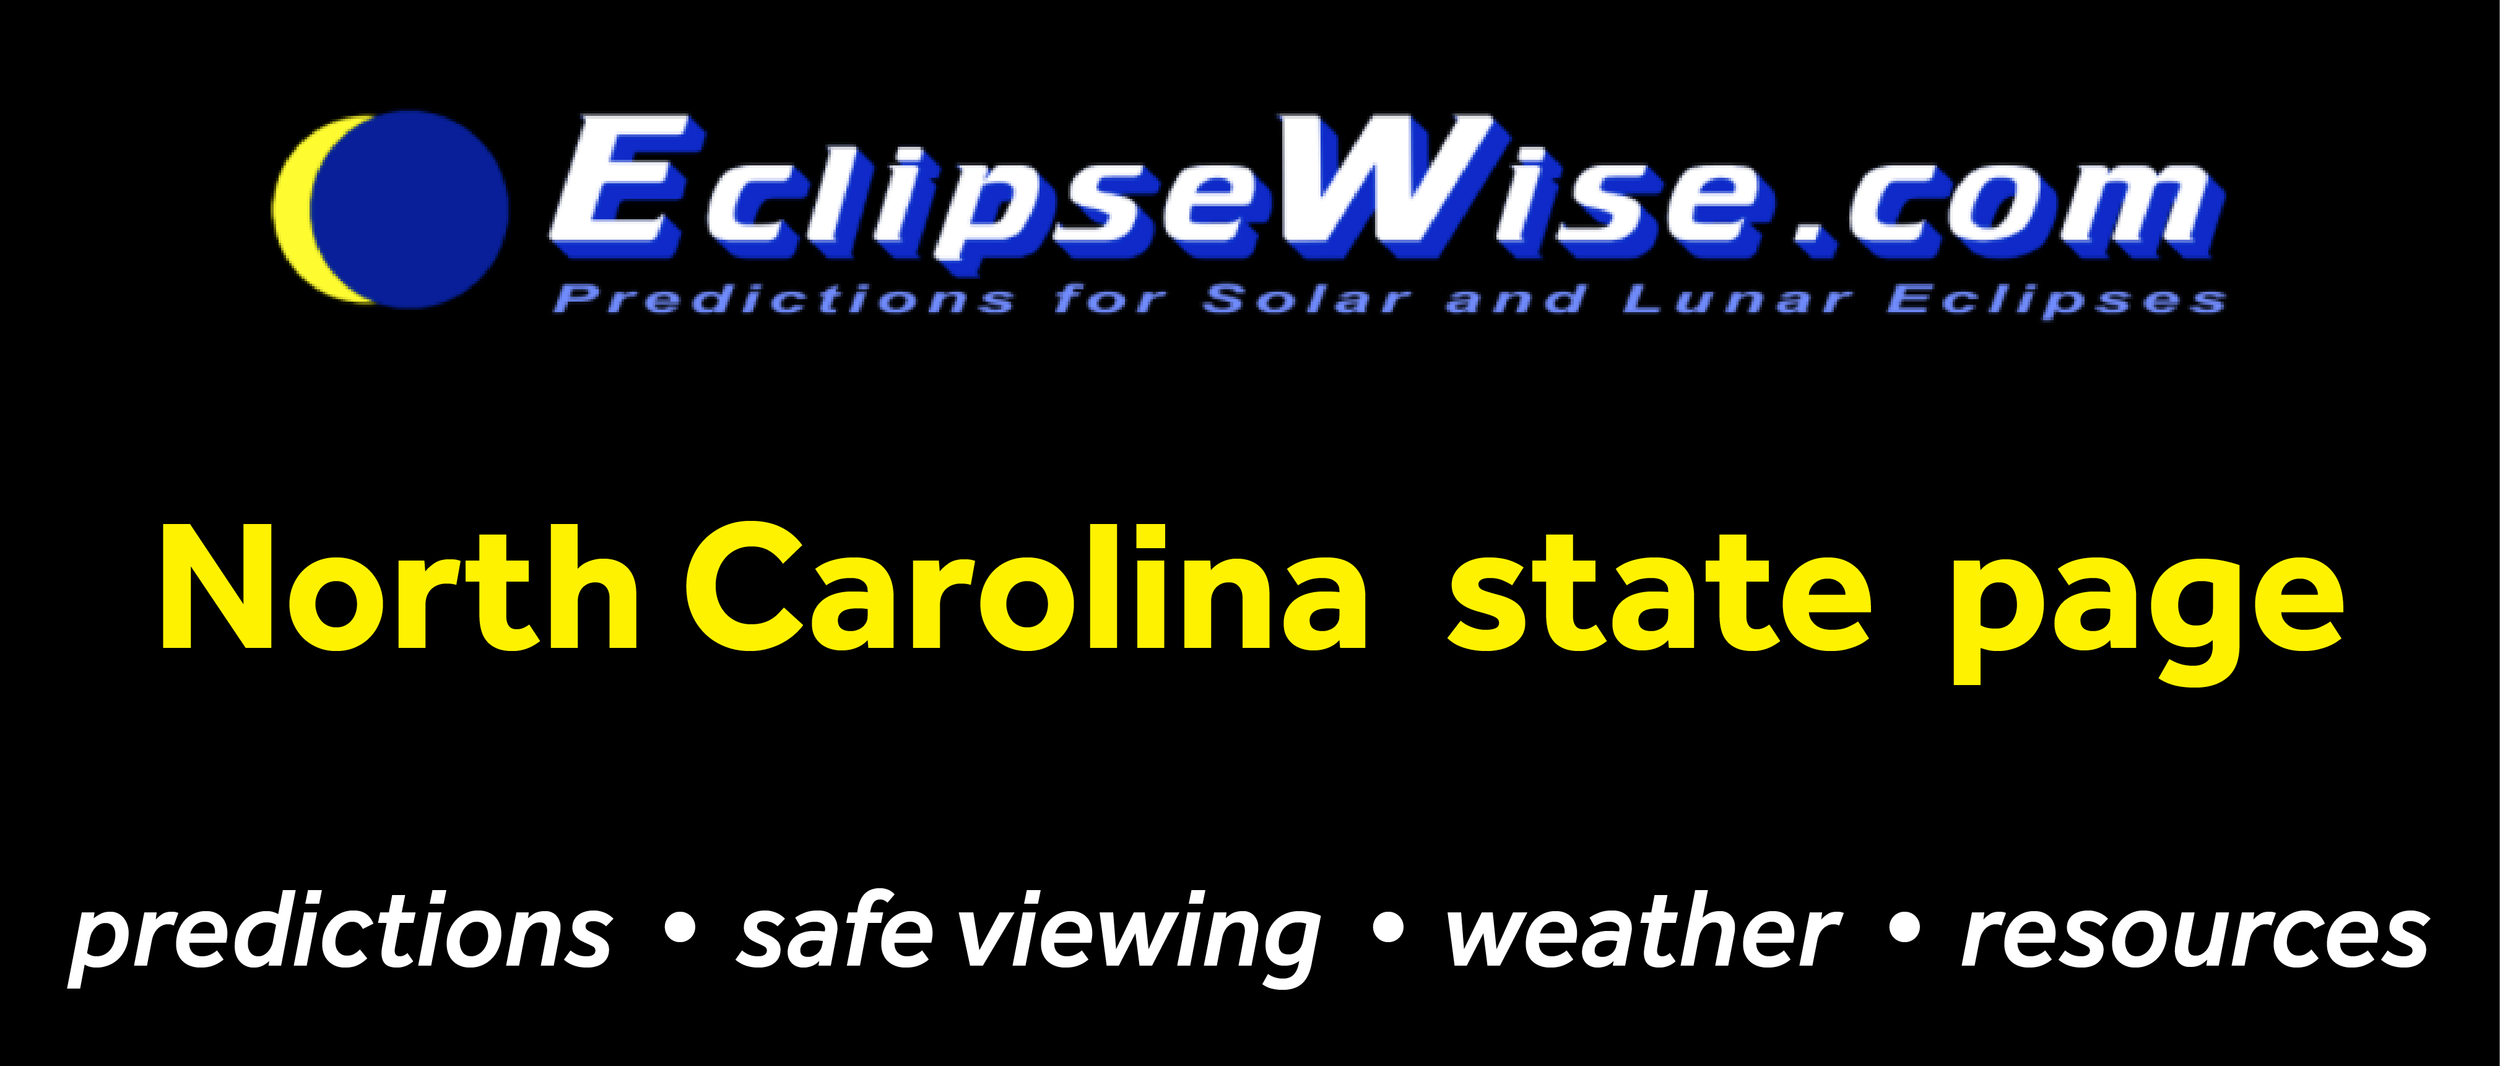 CLICK FOR THE OREGON STATE PAGE ON   ECLIPSEWISE.COM  . THE SITE PROVIDES THE MOST COMPREHENSIVE AND AUTHORITATIVE STATE PAGES FOR THE 2017 ECLIPSE. ECLIPSEWISE.COM IS BUILT BY FRED ESPENAK, RETIRED NASA ASTROPHYSICIST AND THE LEADING EXPERT ON ECLIPSE PREDICTIONS.